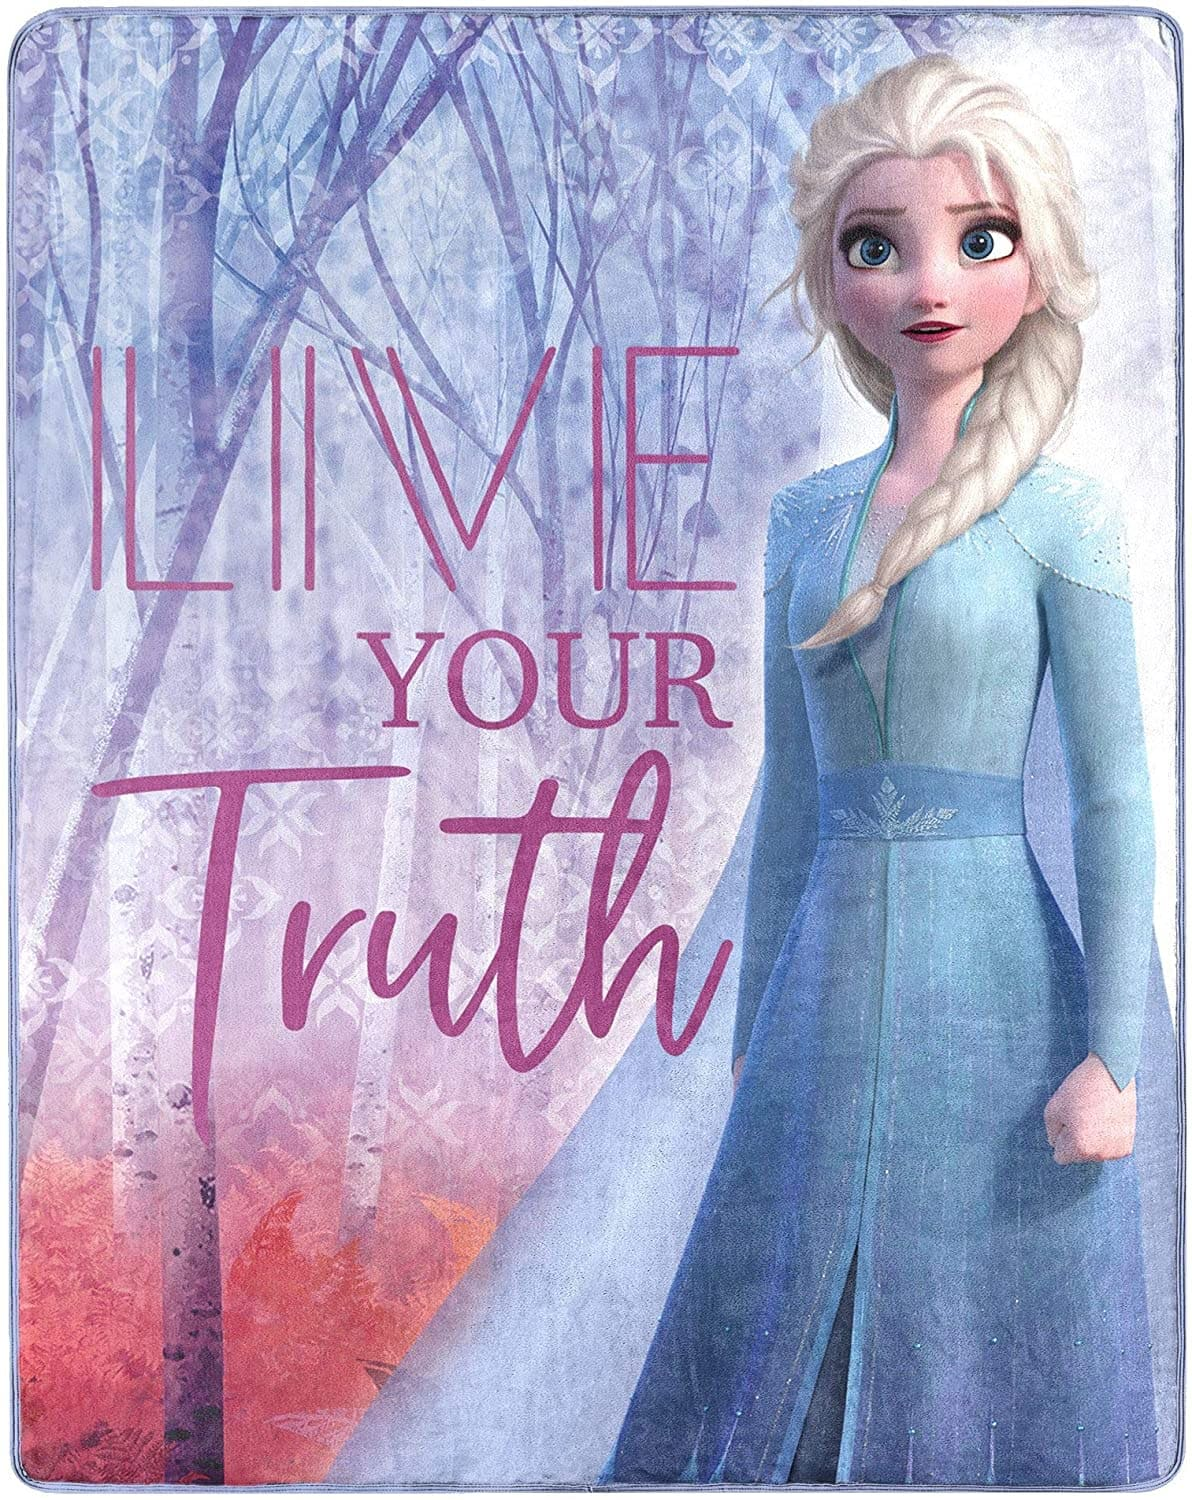 """50"""" x 40"""" Disney's Frozen 2 Elsa Live Your Truth Silk Touch Throw Blanket $8.45 + Free Shipping w/ Amazon Prime or Orders $25+"""